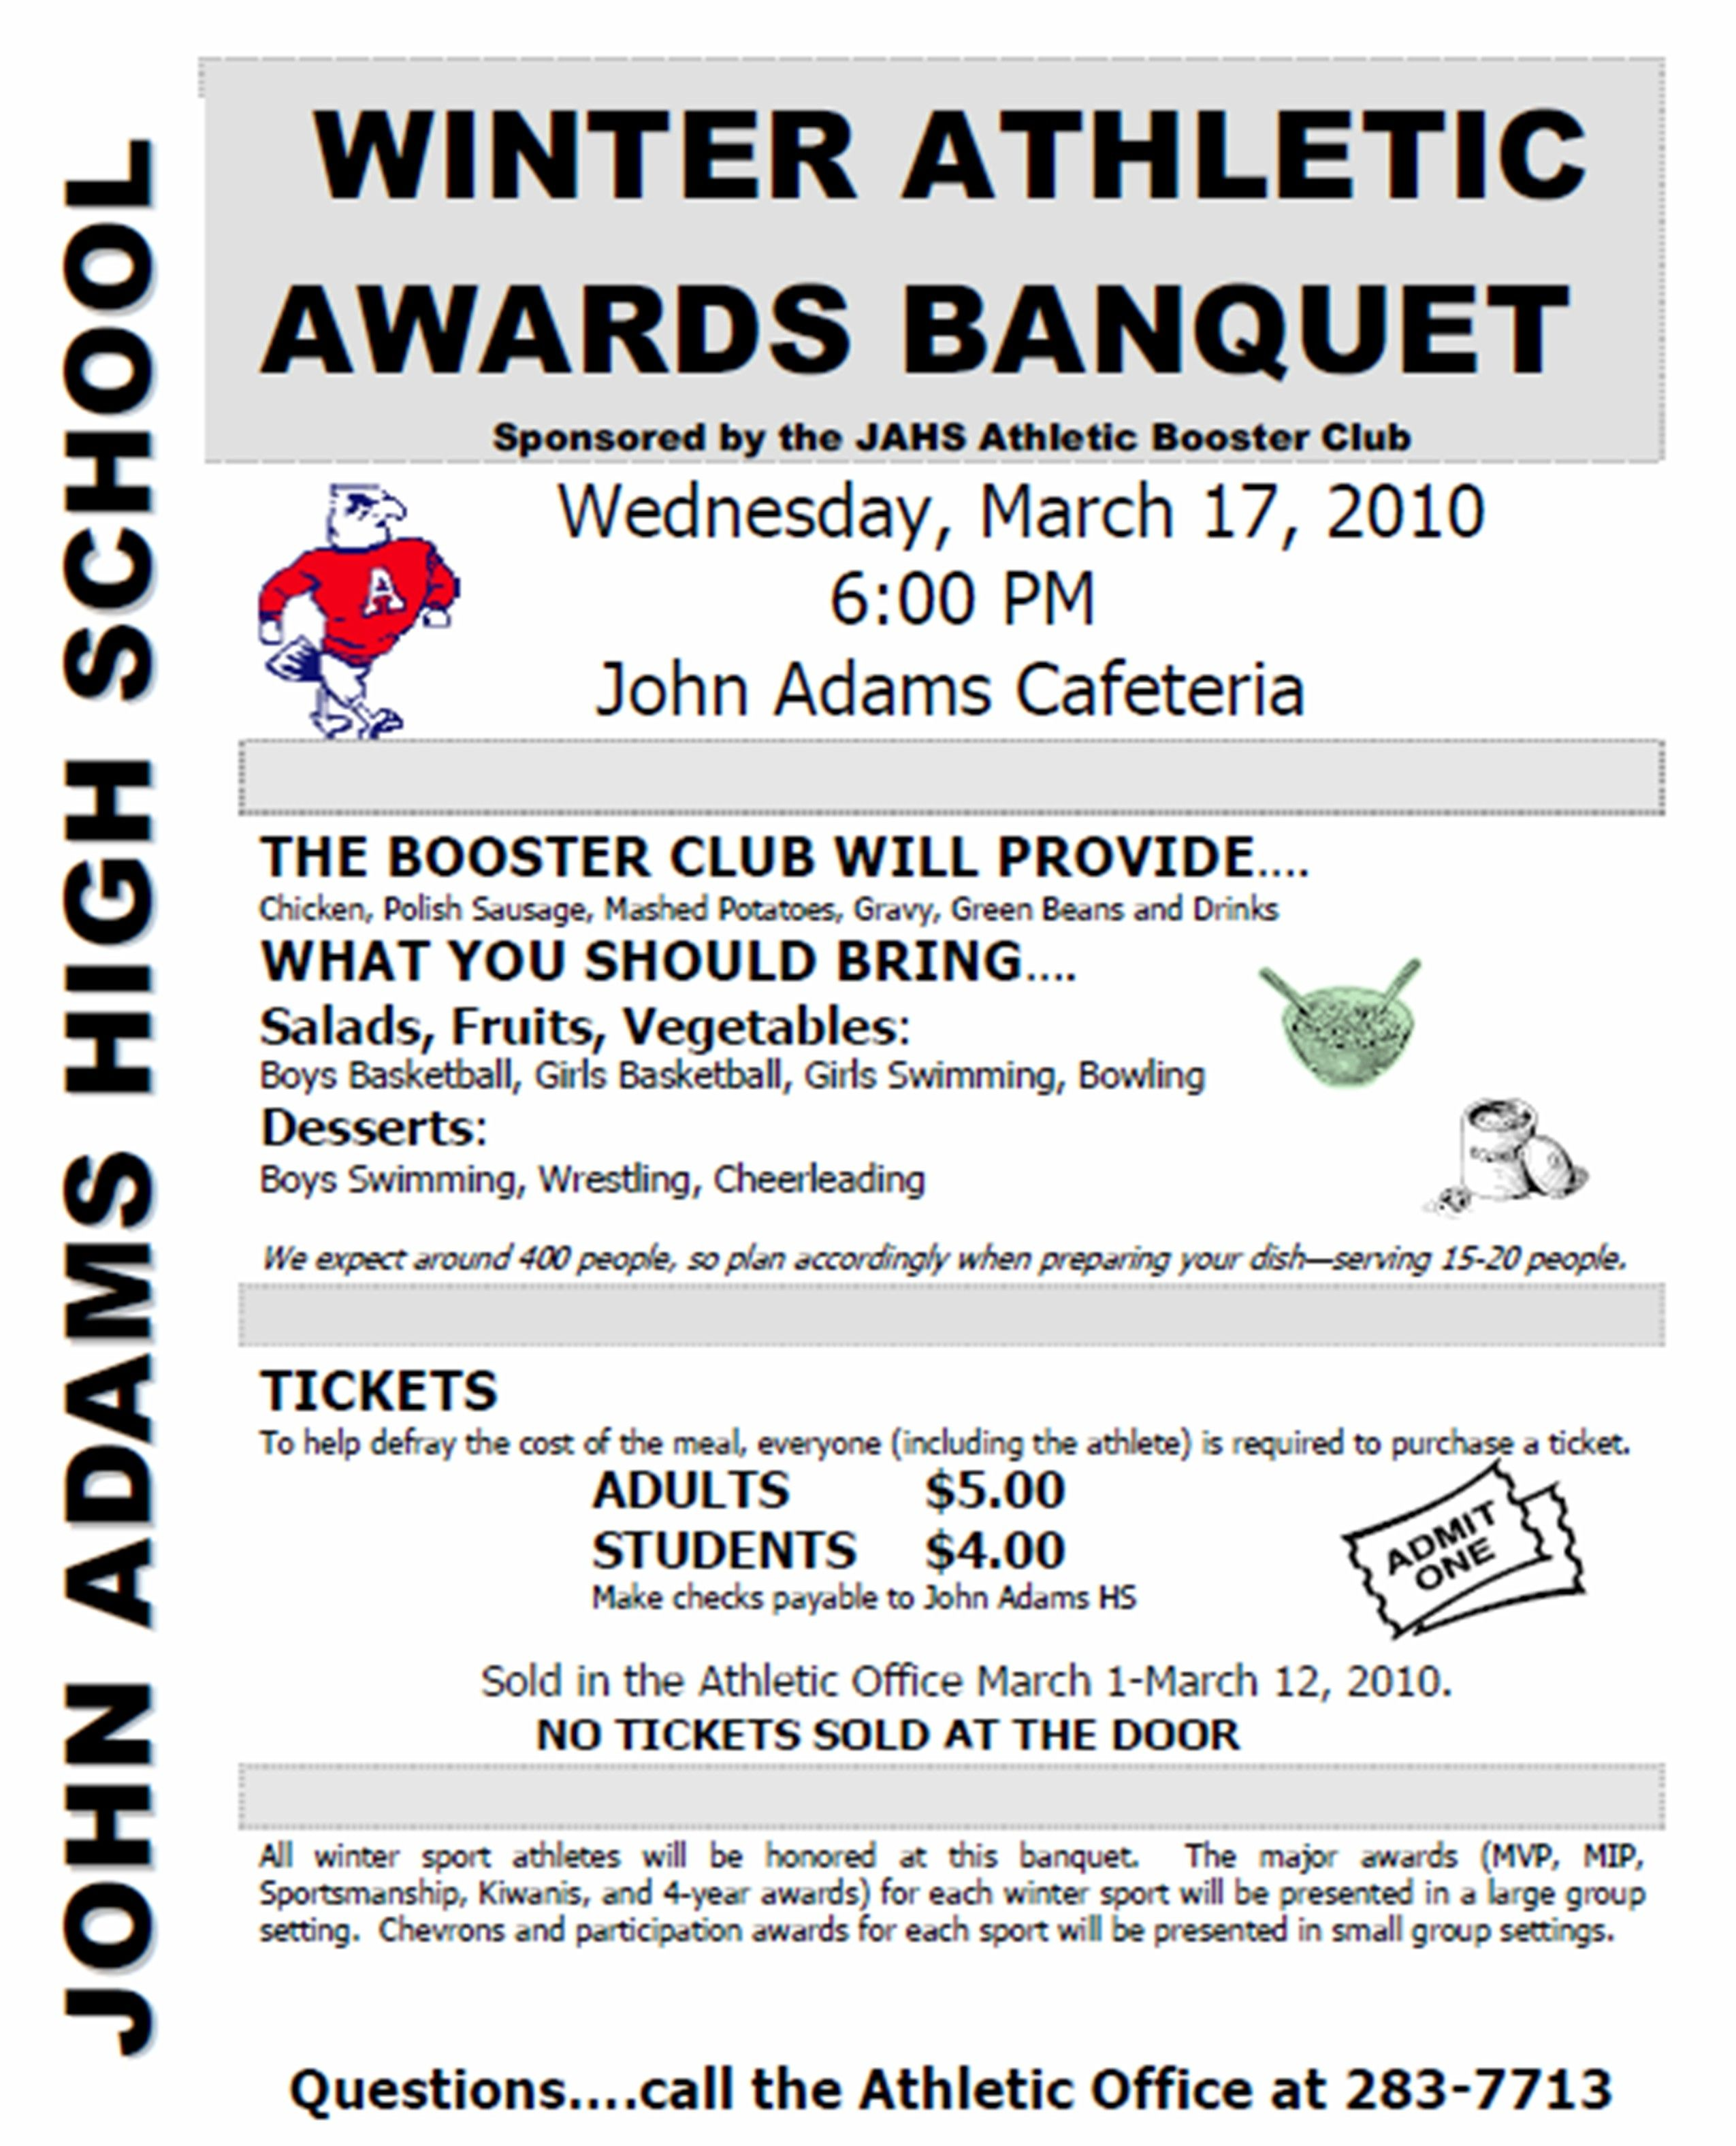 Sports Awards Banquet Program Template | Athletic booster ...